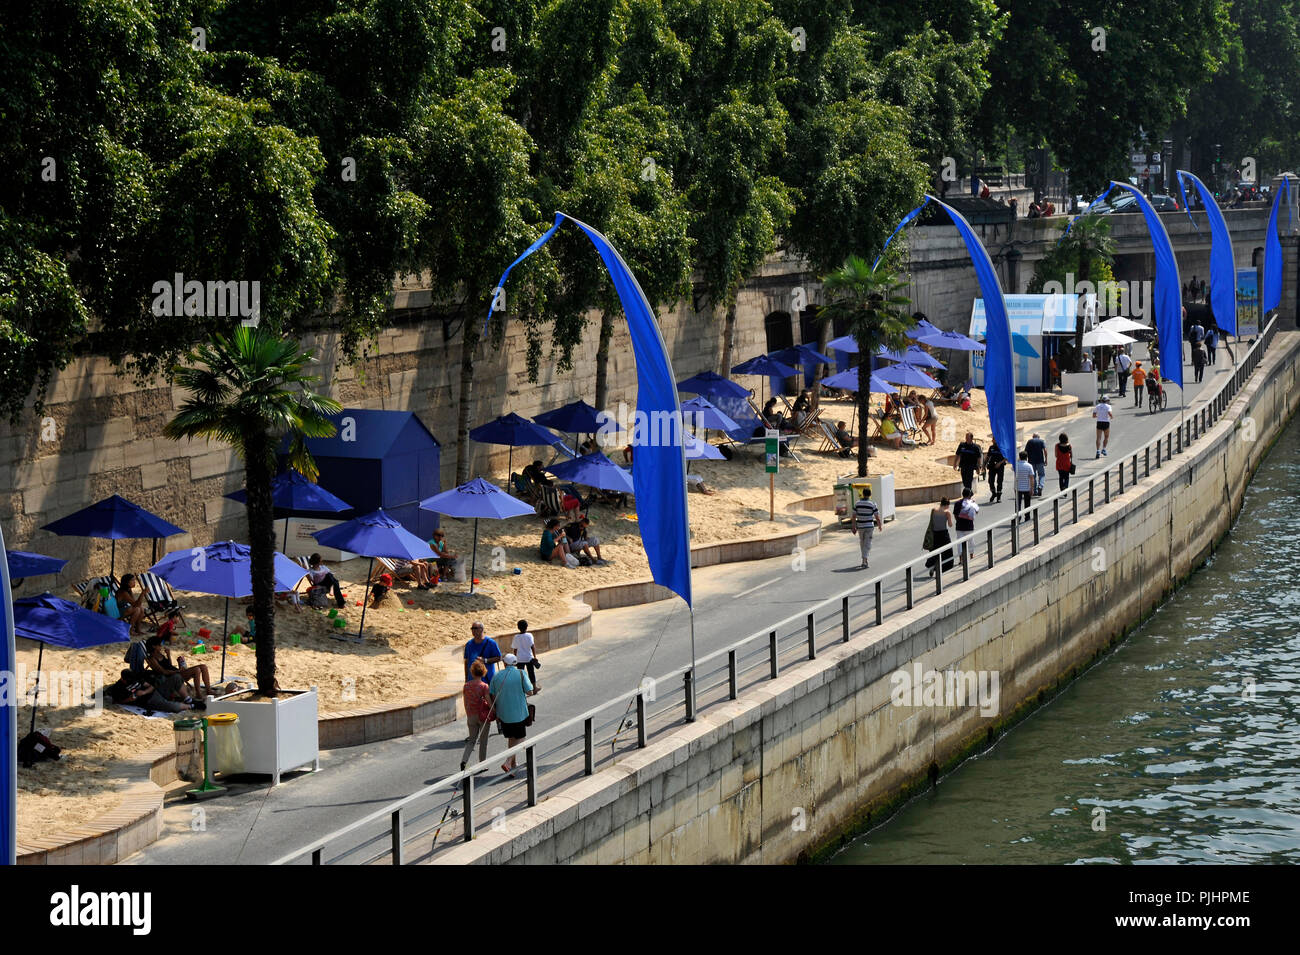 France, Paris City, Paris-Plage event, a beach summer on the banks of the Seine river. - Stock Image